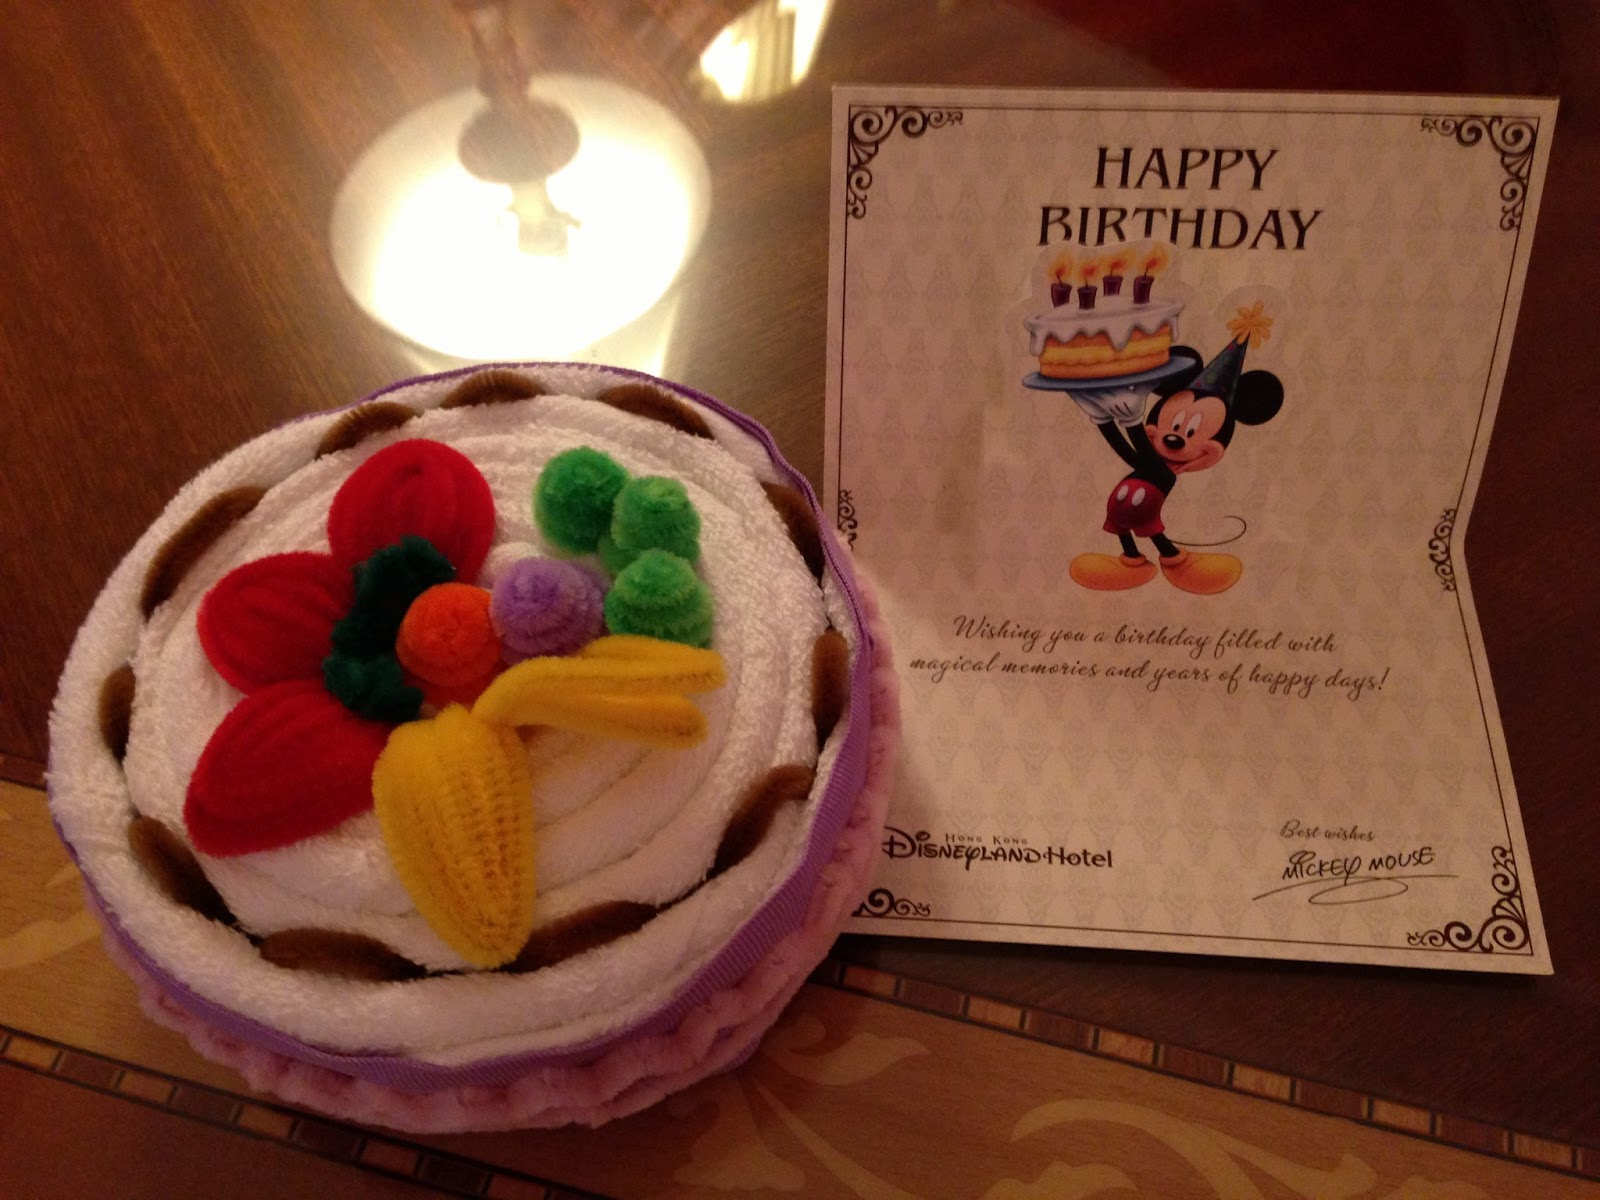 In Our Room We Were Greeted With This Birthday Cake Towel Complete A Card Signed By No Less Than Mickey Mouse Himself